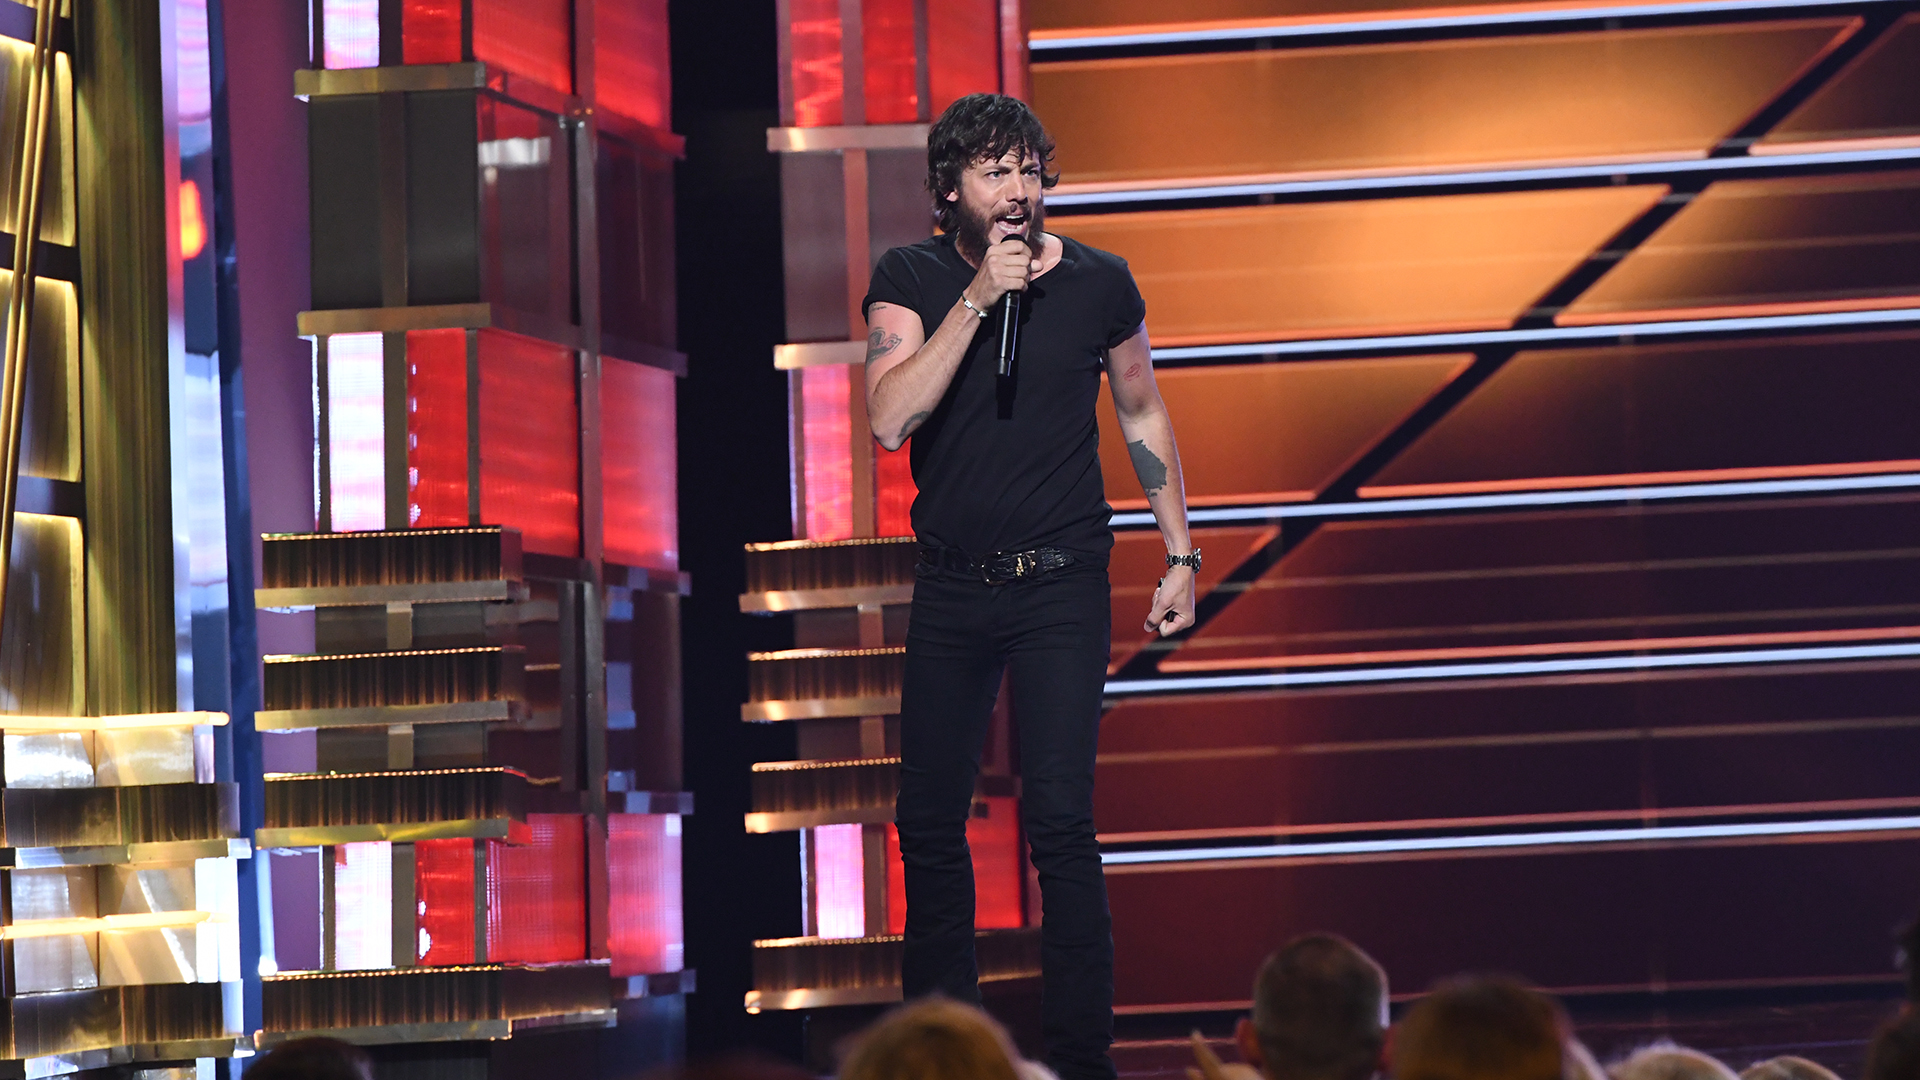 Chris Janson closes out the show with an energetic performance of